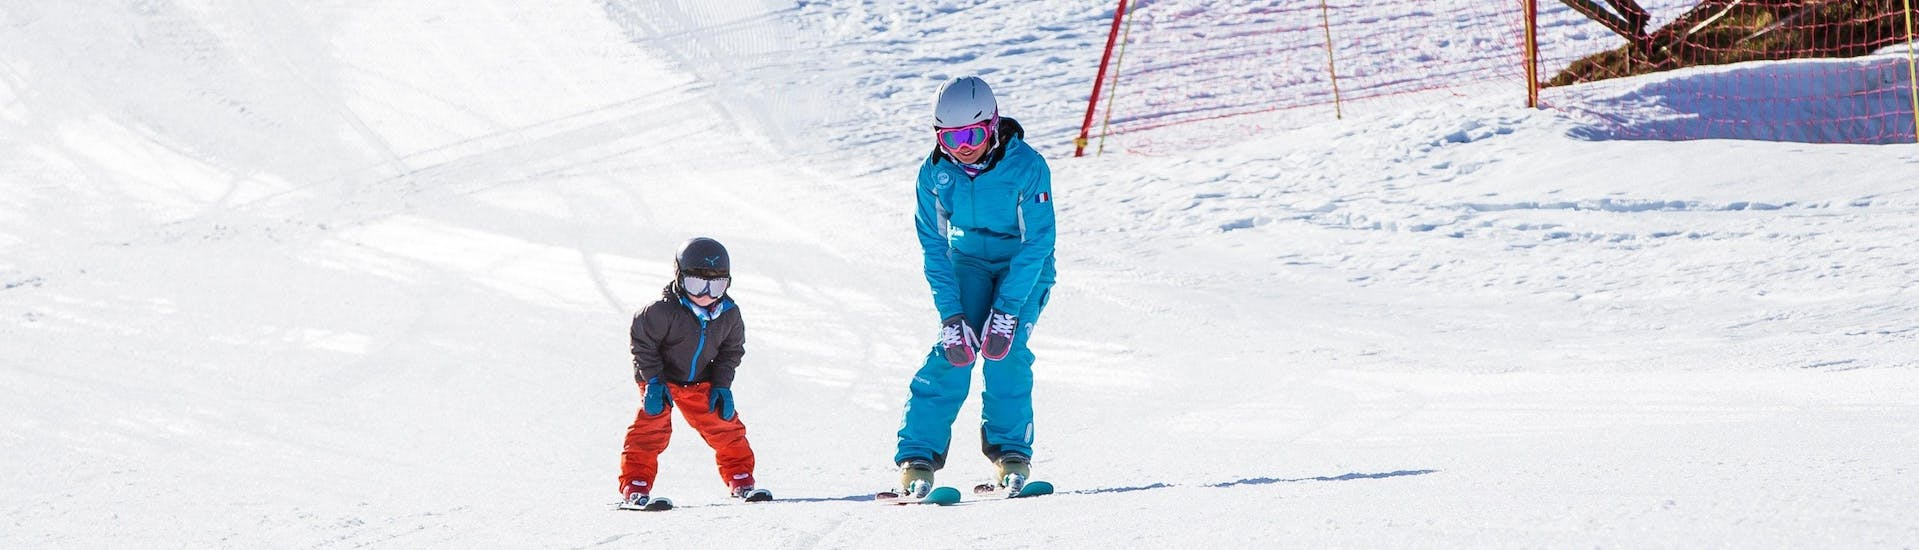 A young skier is gaining confidence on his skis alongside a ski instructor from the ski school ESI Ski Family in Val Thorens thanks to his Private Ski Lessons for Kids of All Levels - Morning.